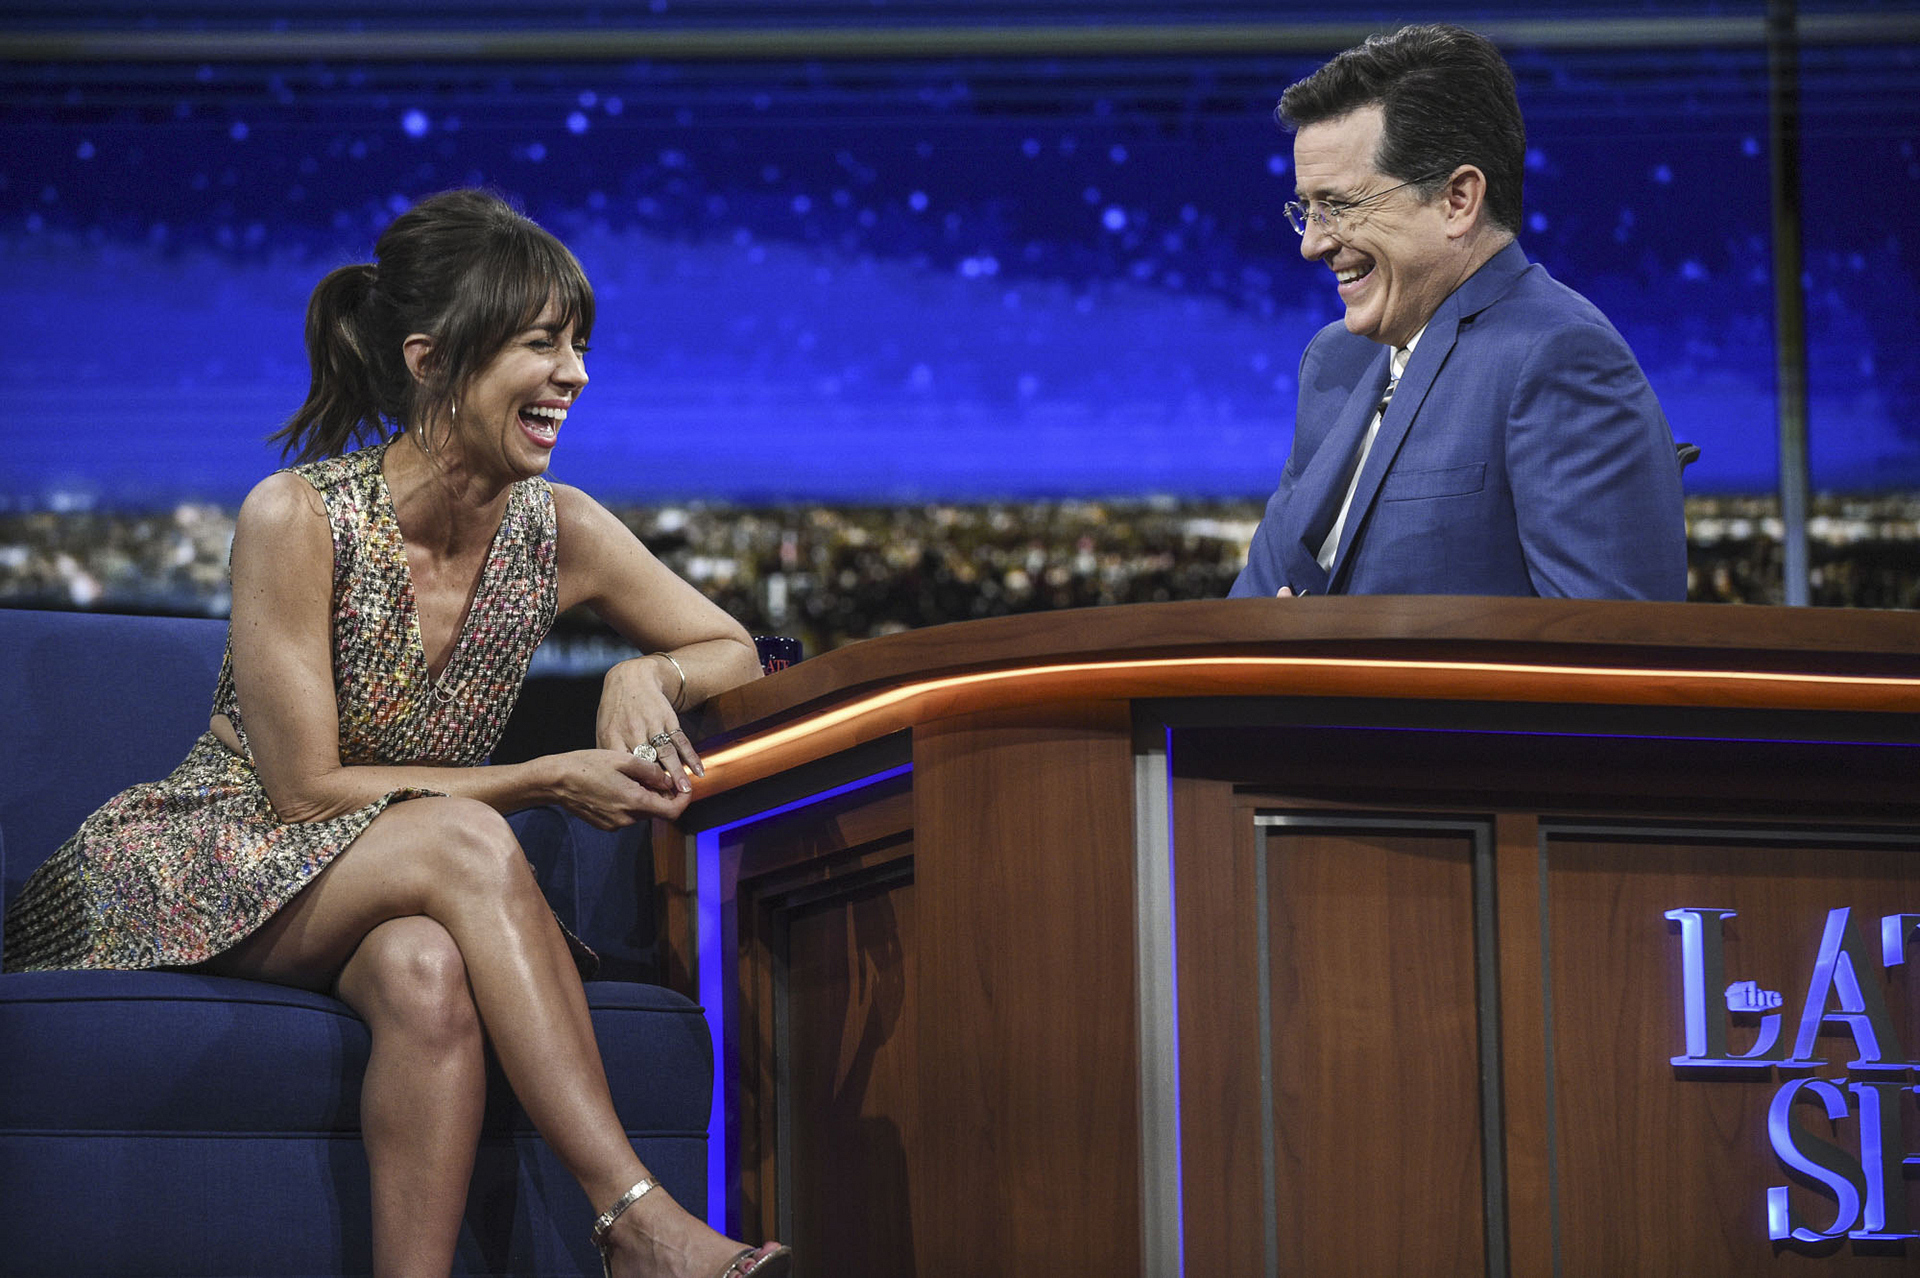 Natasha Leggero Once Worked The Phones At An Australian Brothel